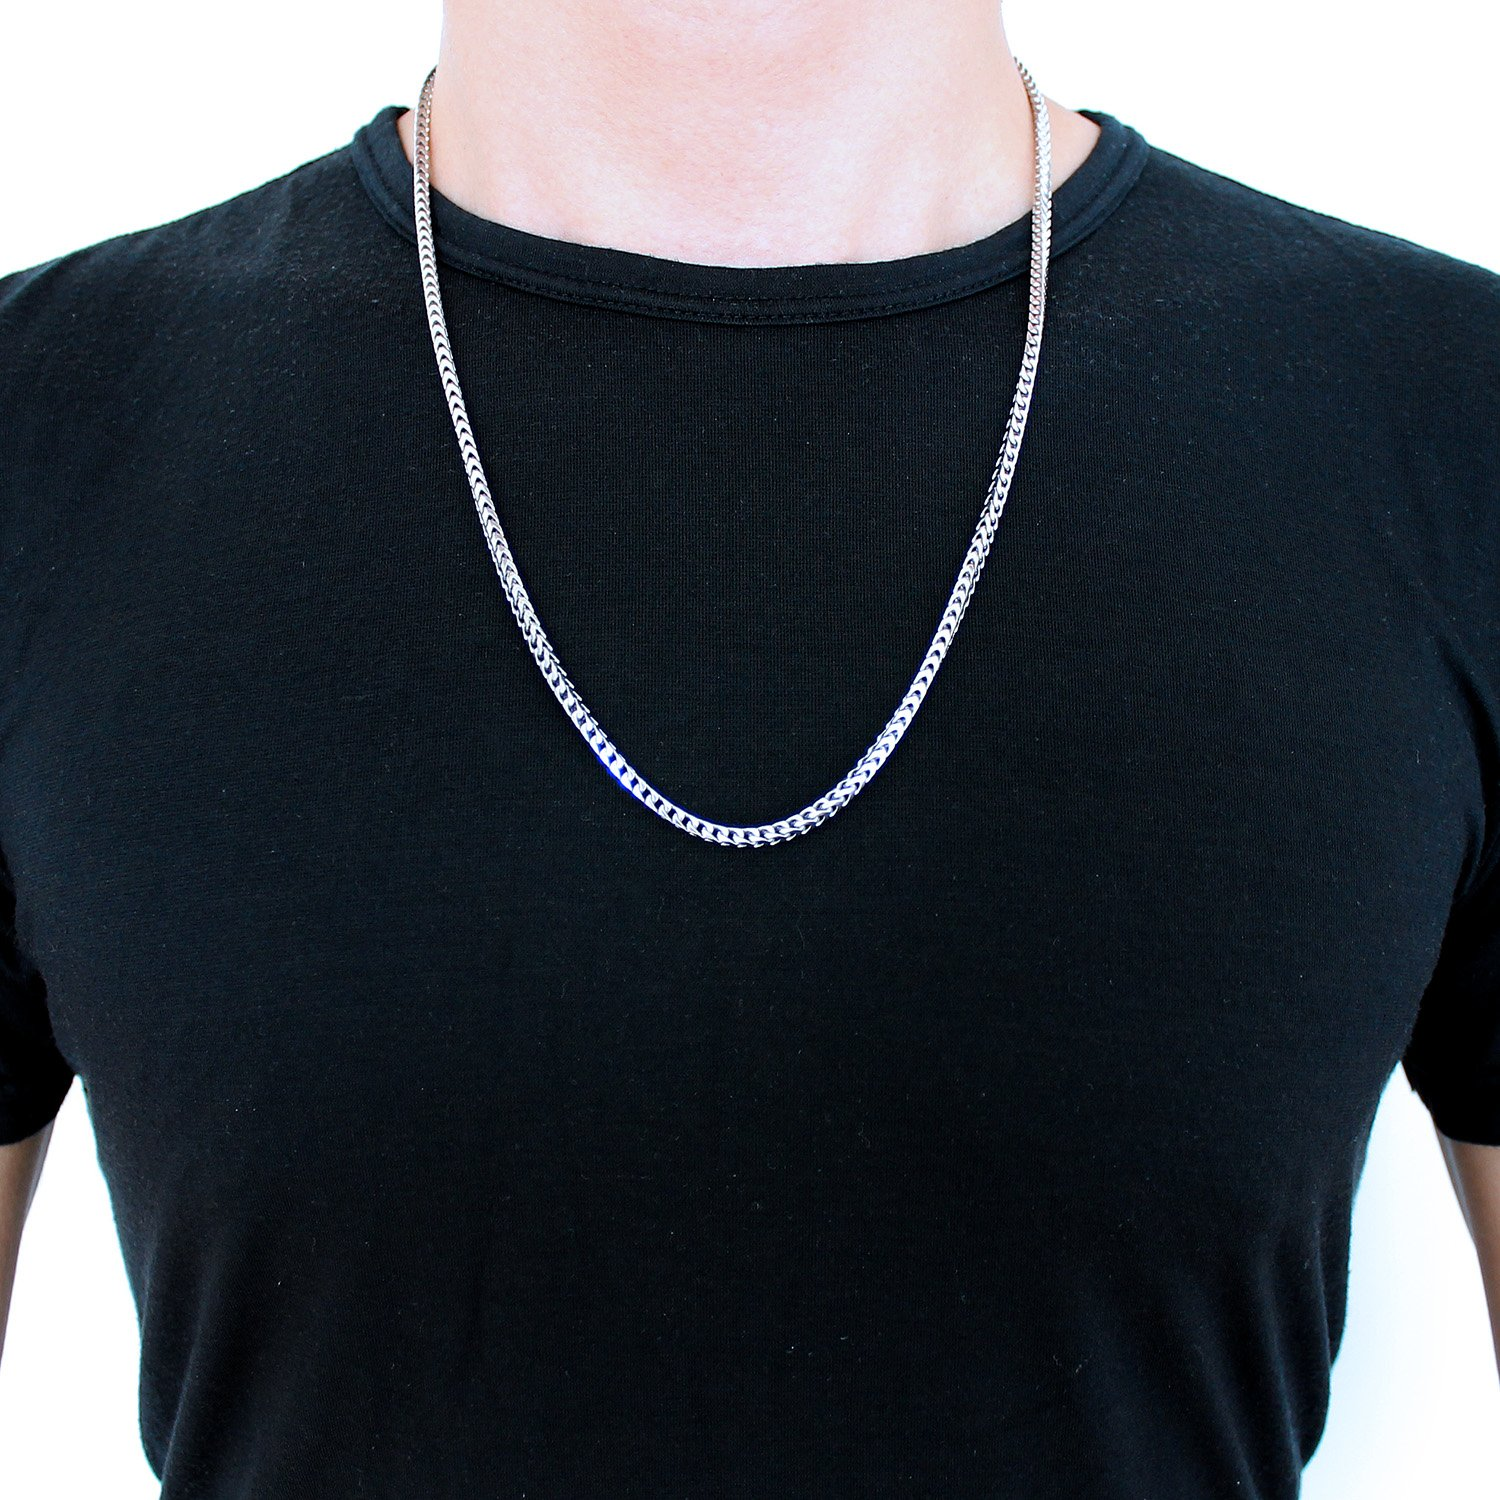 Men's Solid Sterling Silver Rhodium Plated 3mm Comfort Franco Chain Necklace, 24'' by Beauniq (Image #2)